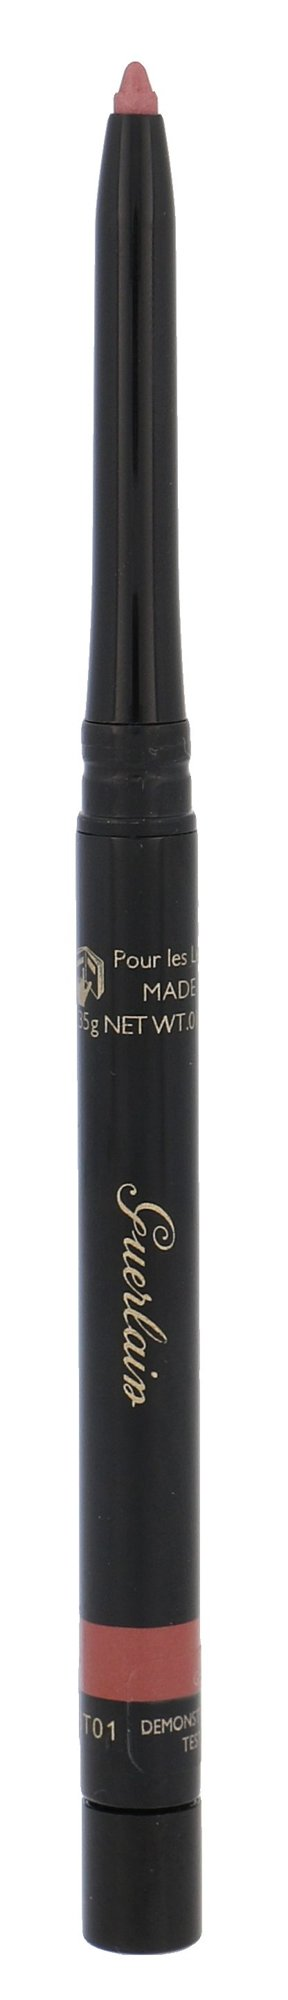 Guerlain The Lip Liner Cosmetic 0,35ml 44 Bois De Santal